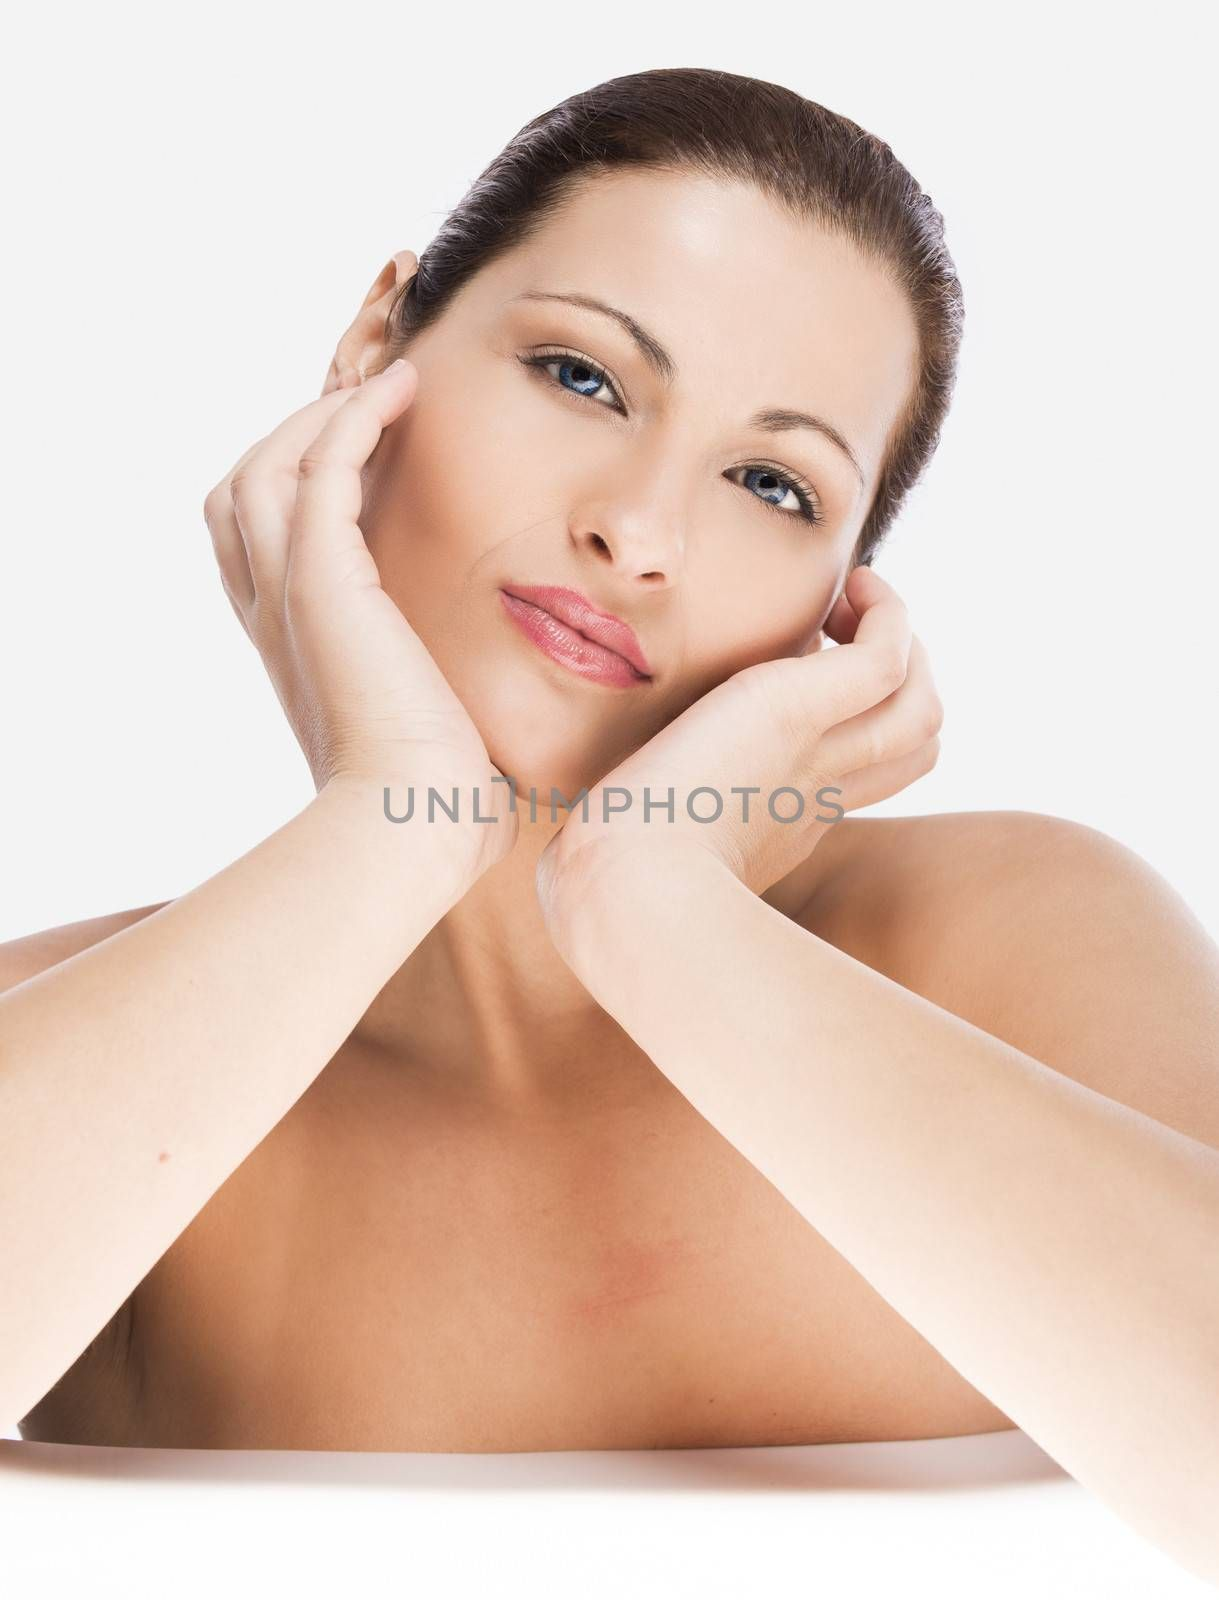 Portrait of a beautiful blonde woman, isolated on white background